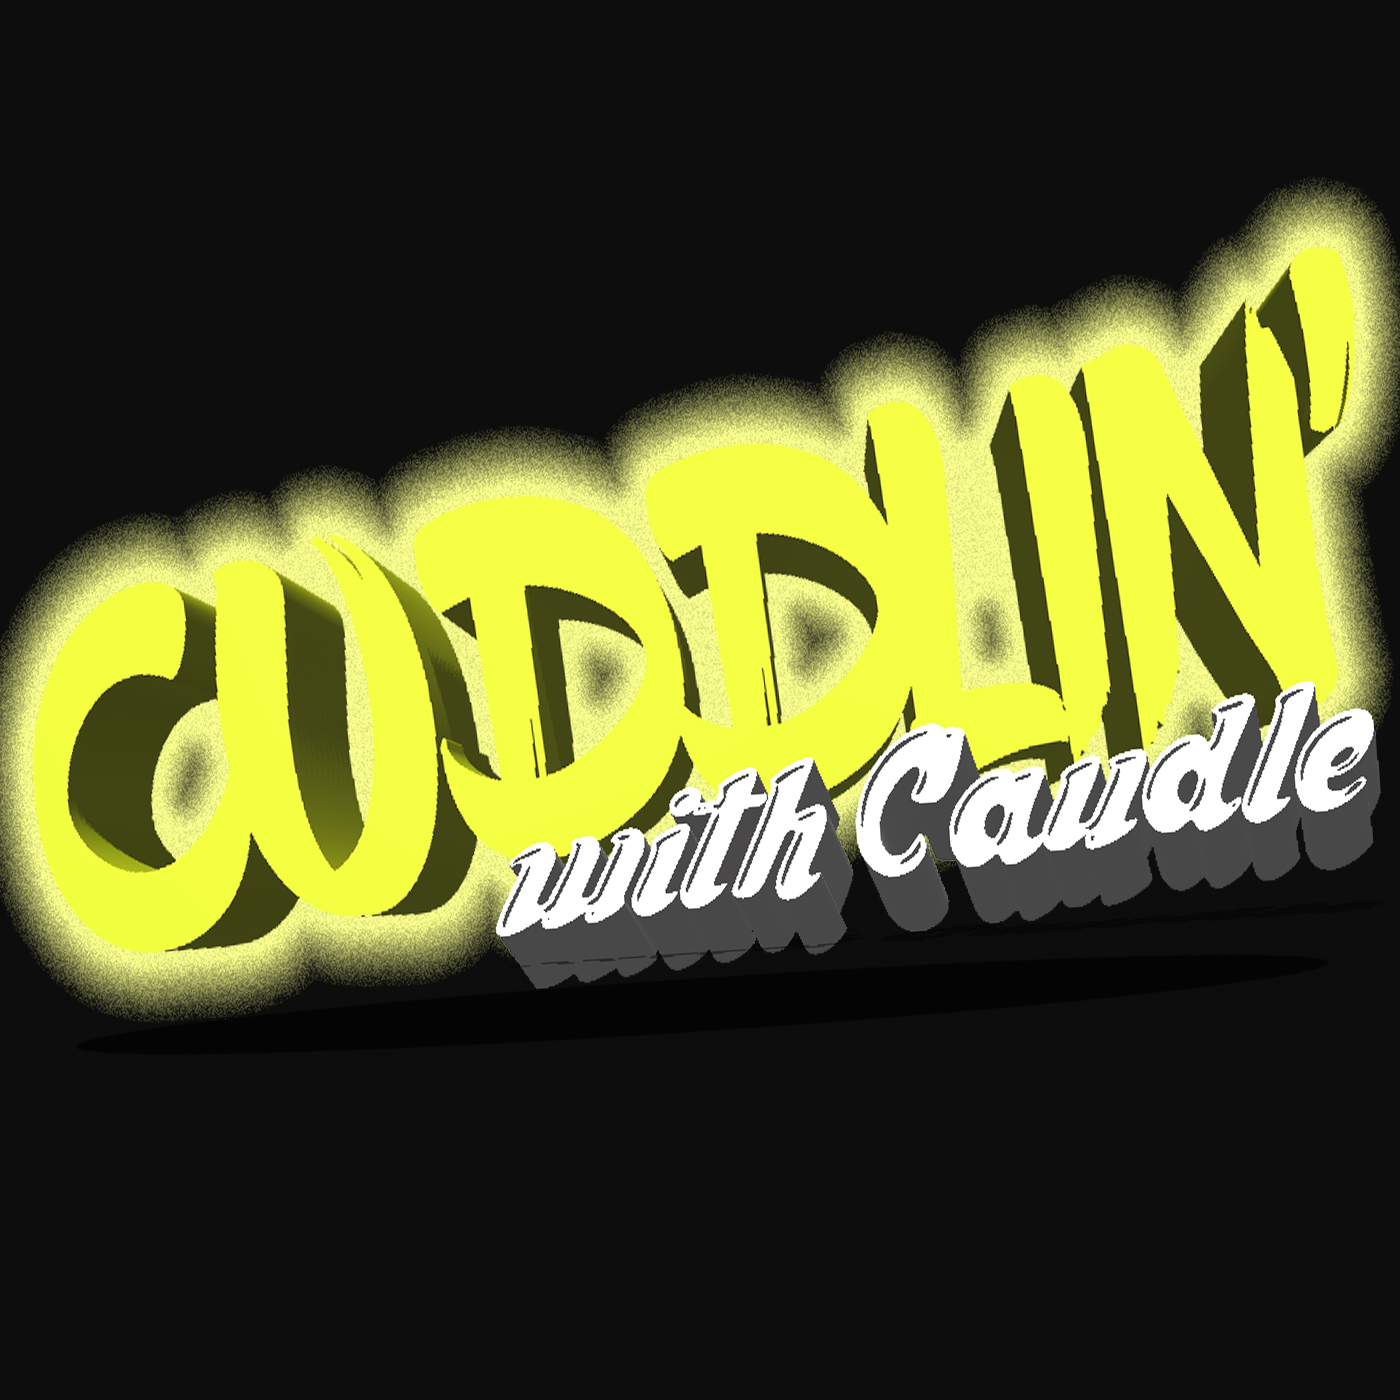 Cuddlin' with Caudle Ep. 16